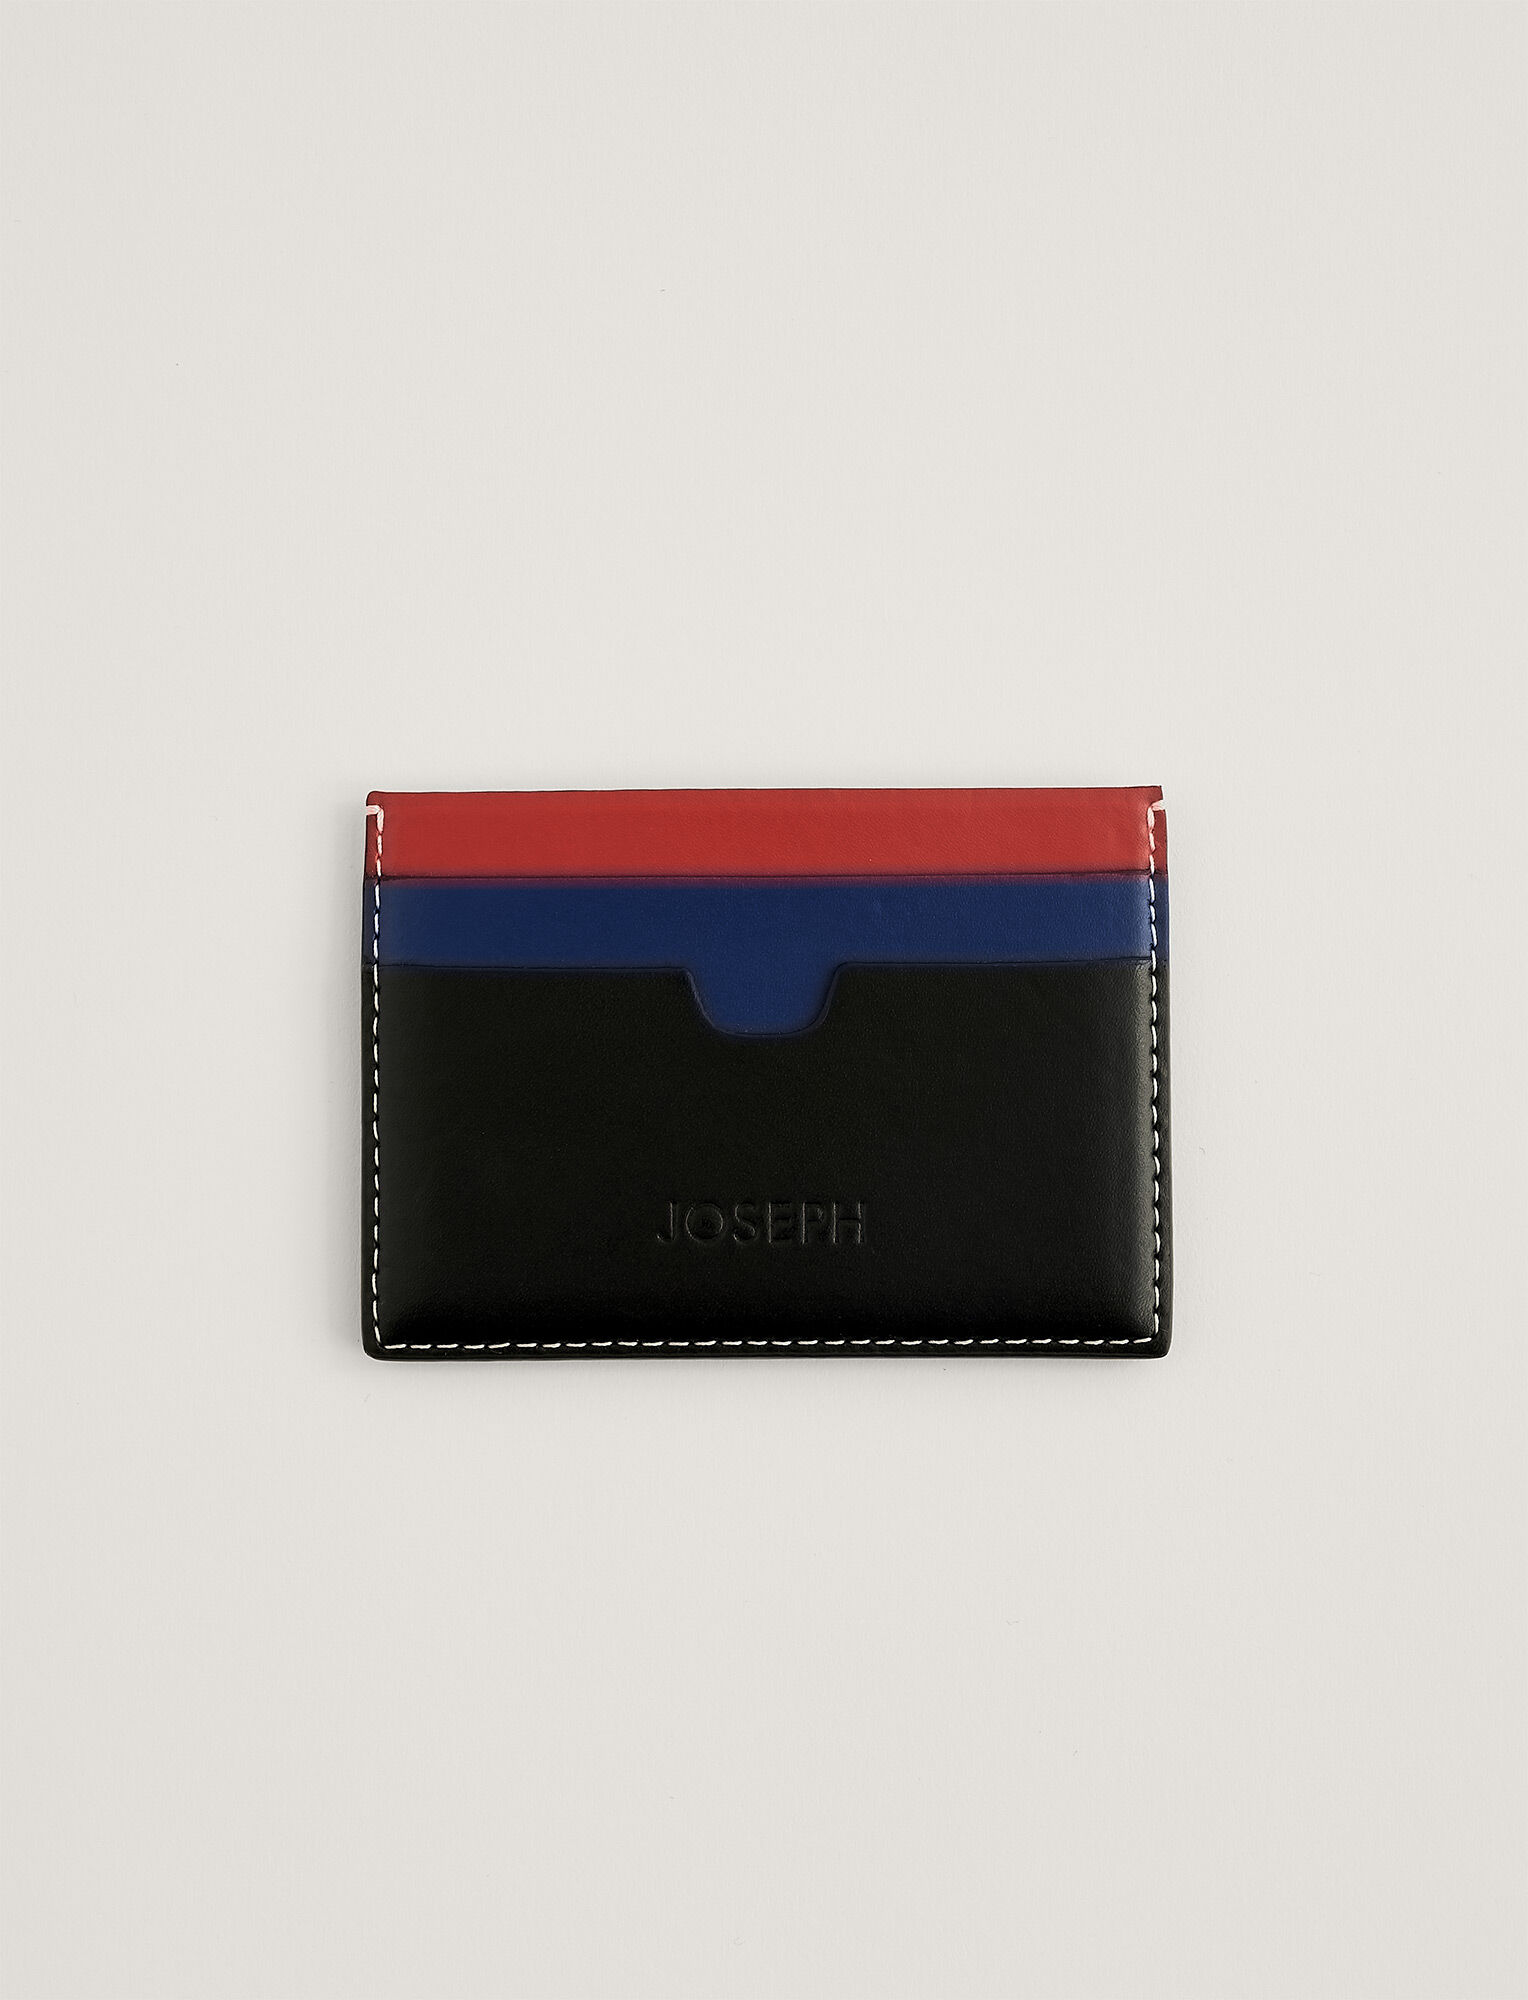 Joseph, Leather Card Holder, in MIX 2 TOMATO/COBALT/BLACK